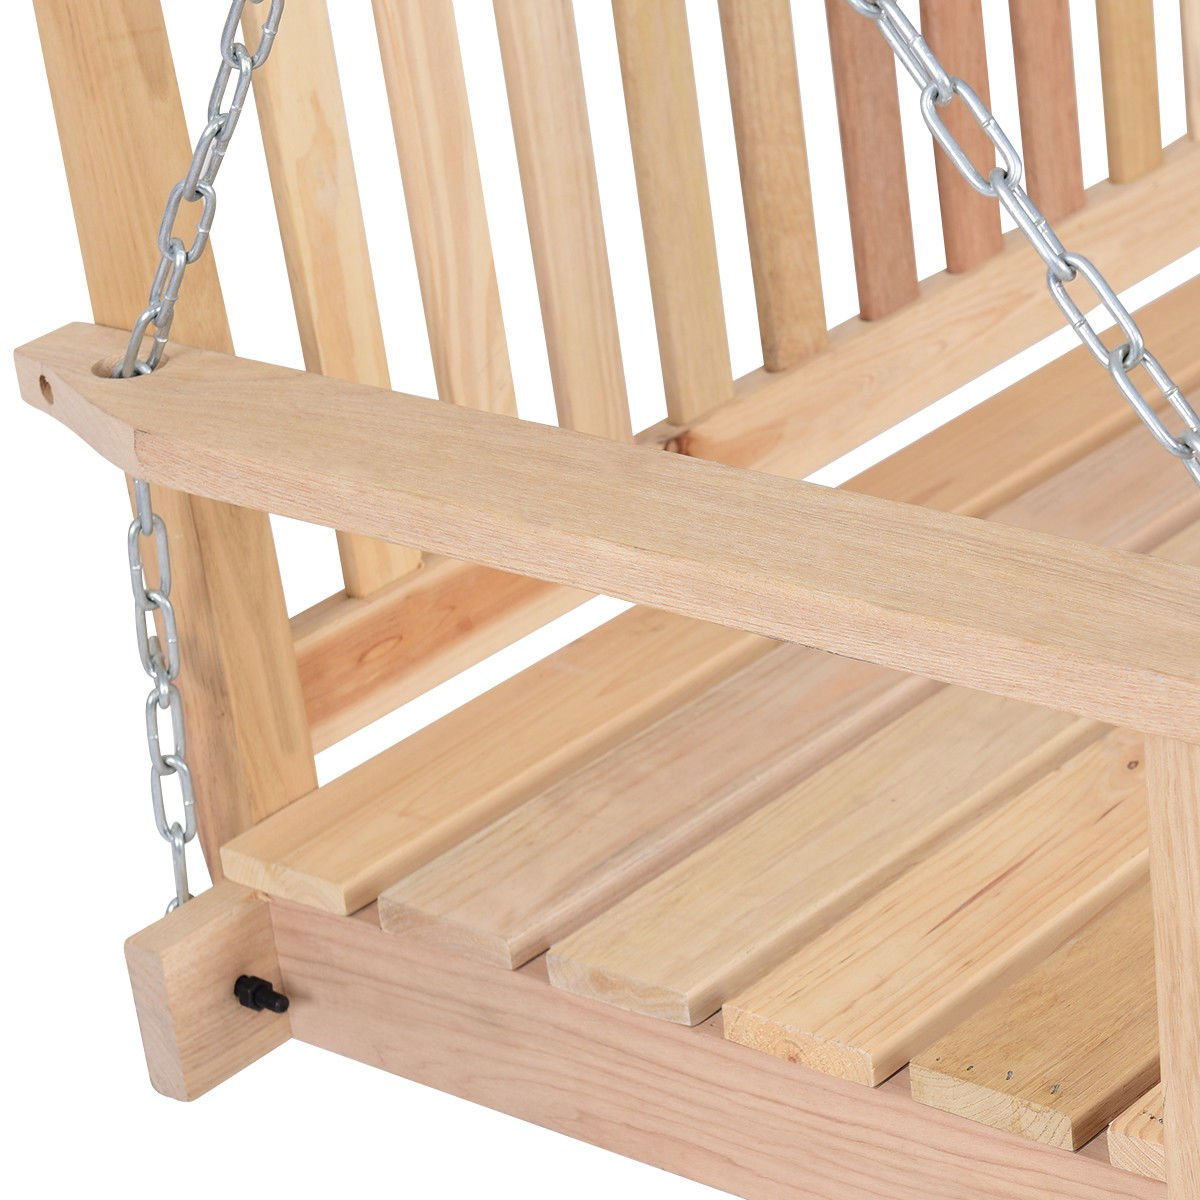 Giantex 4 FT Porch Swing with Chain Natural Wood Garden Swing Seat Patio Hanging Seat